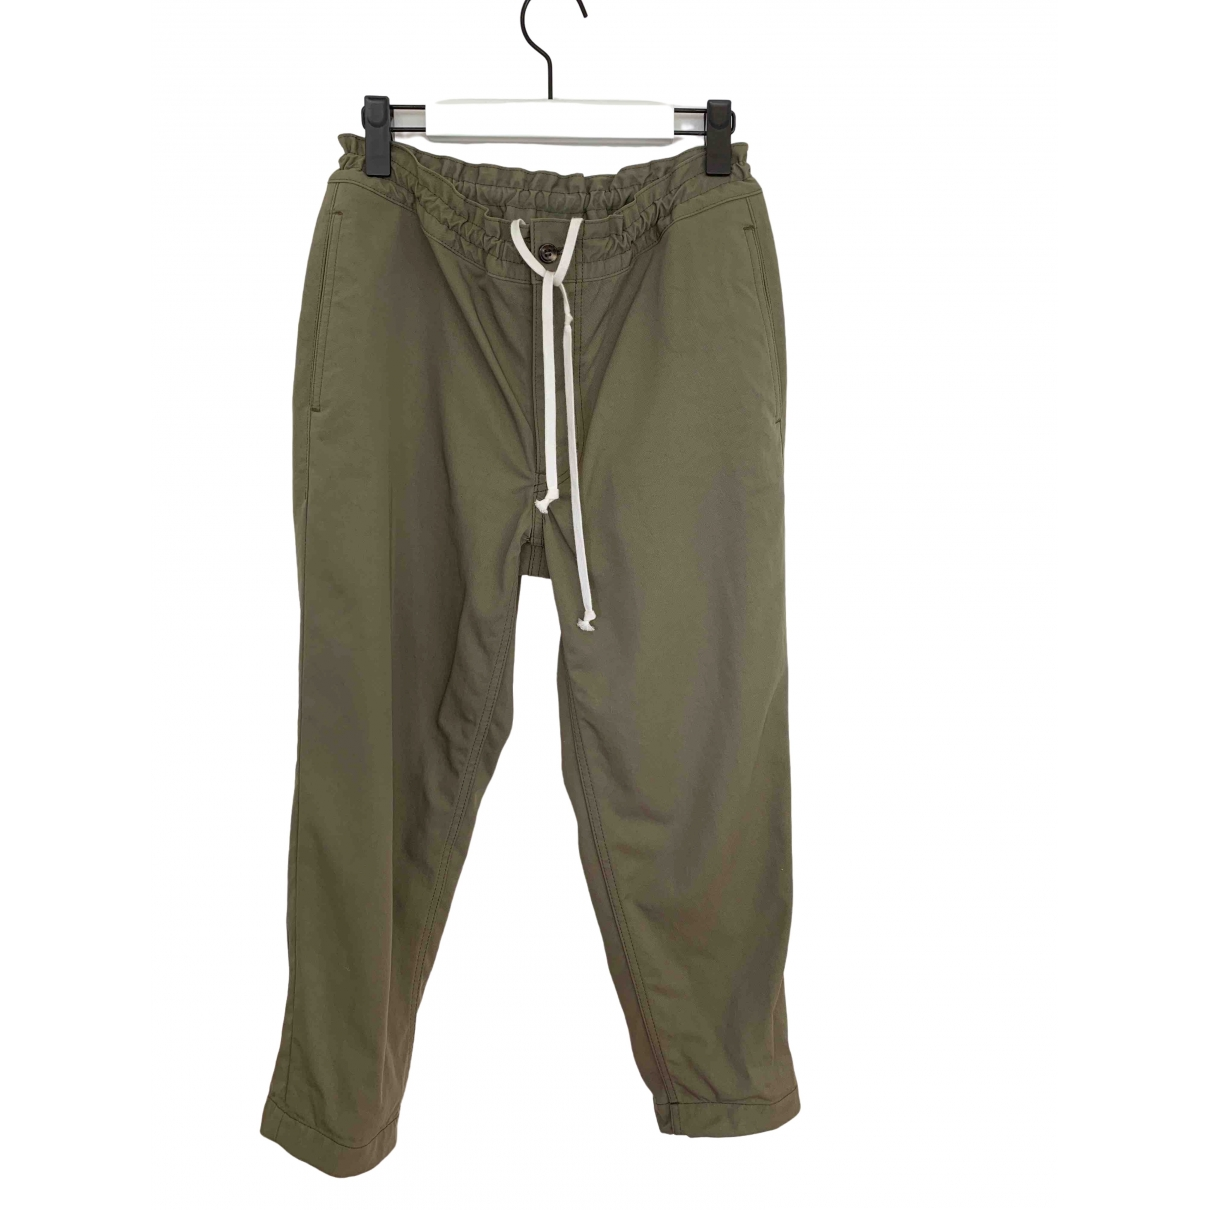 Comme Des Garcons \N Khaki Trousers for Men XS International